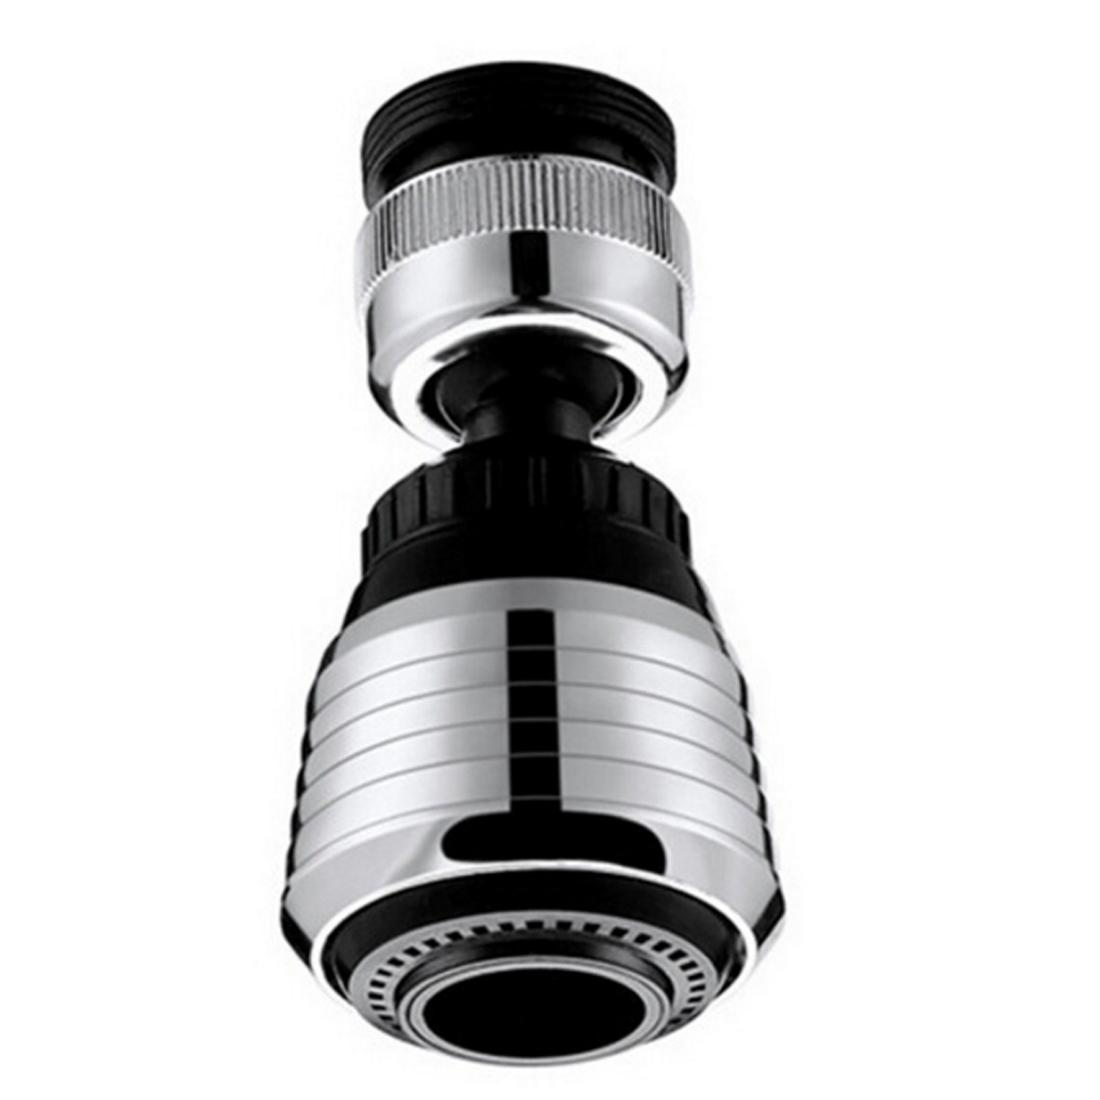 2018 New Kitchen Faucet Aerator Connector Diffuser Nozzle Filter ...